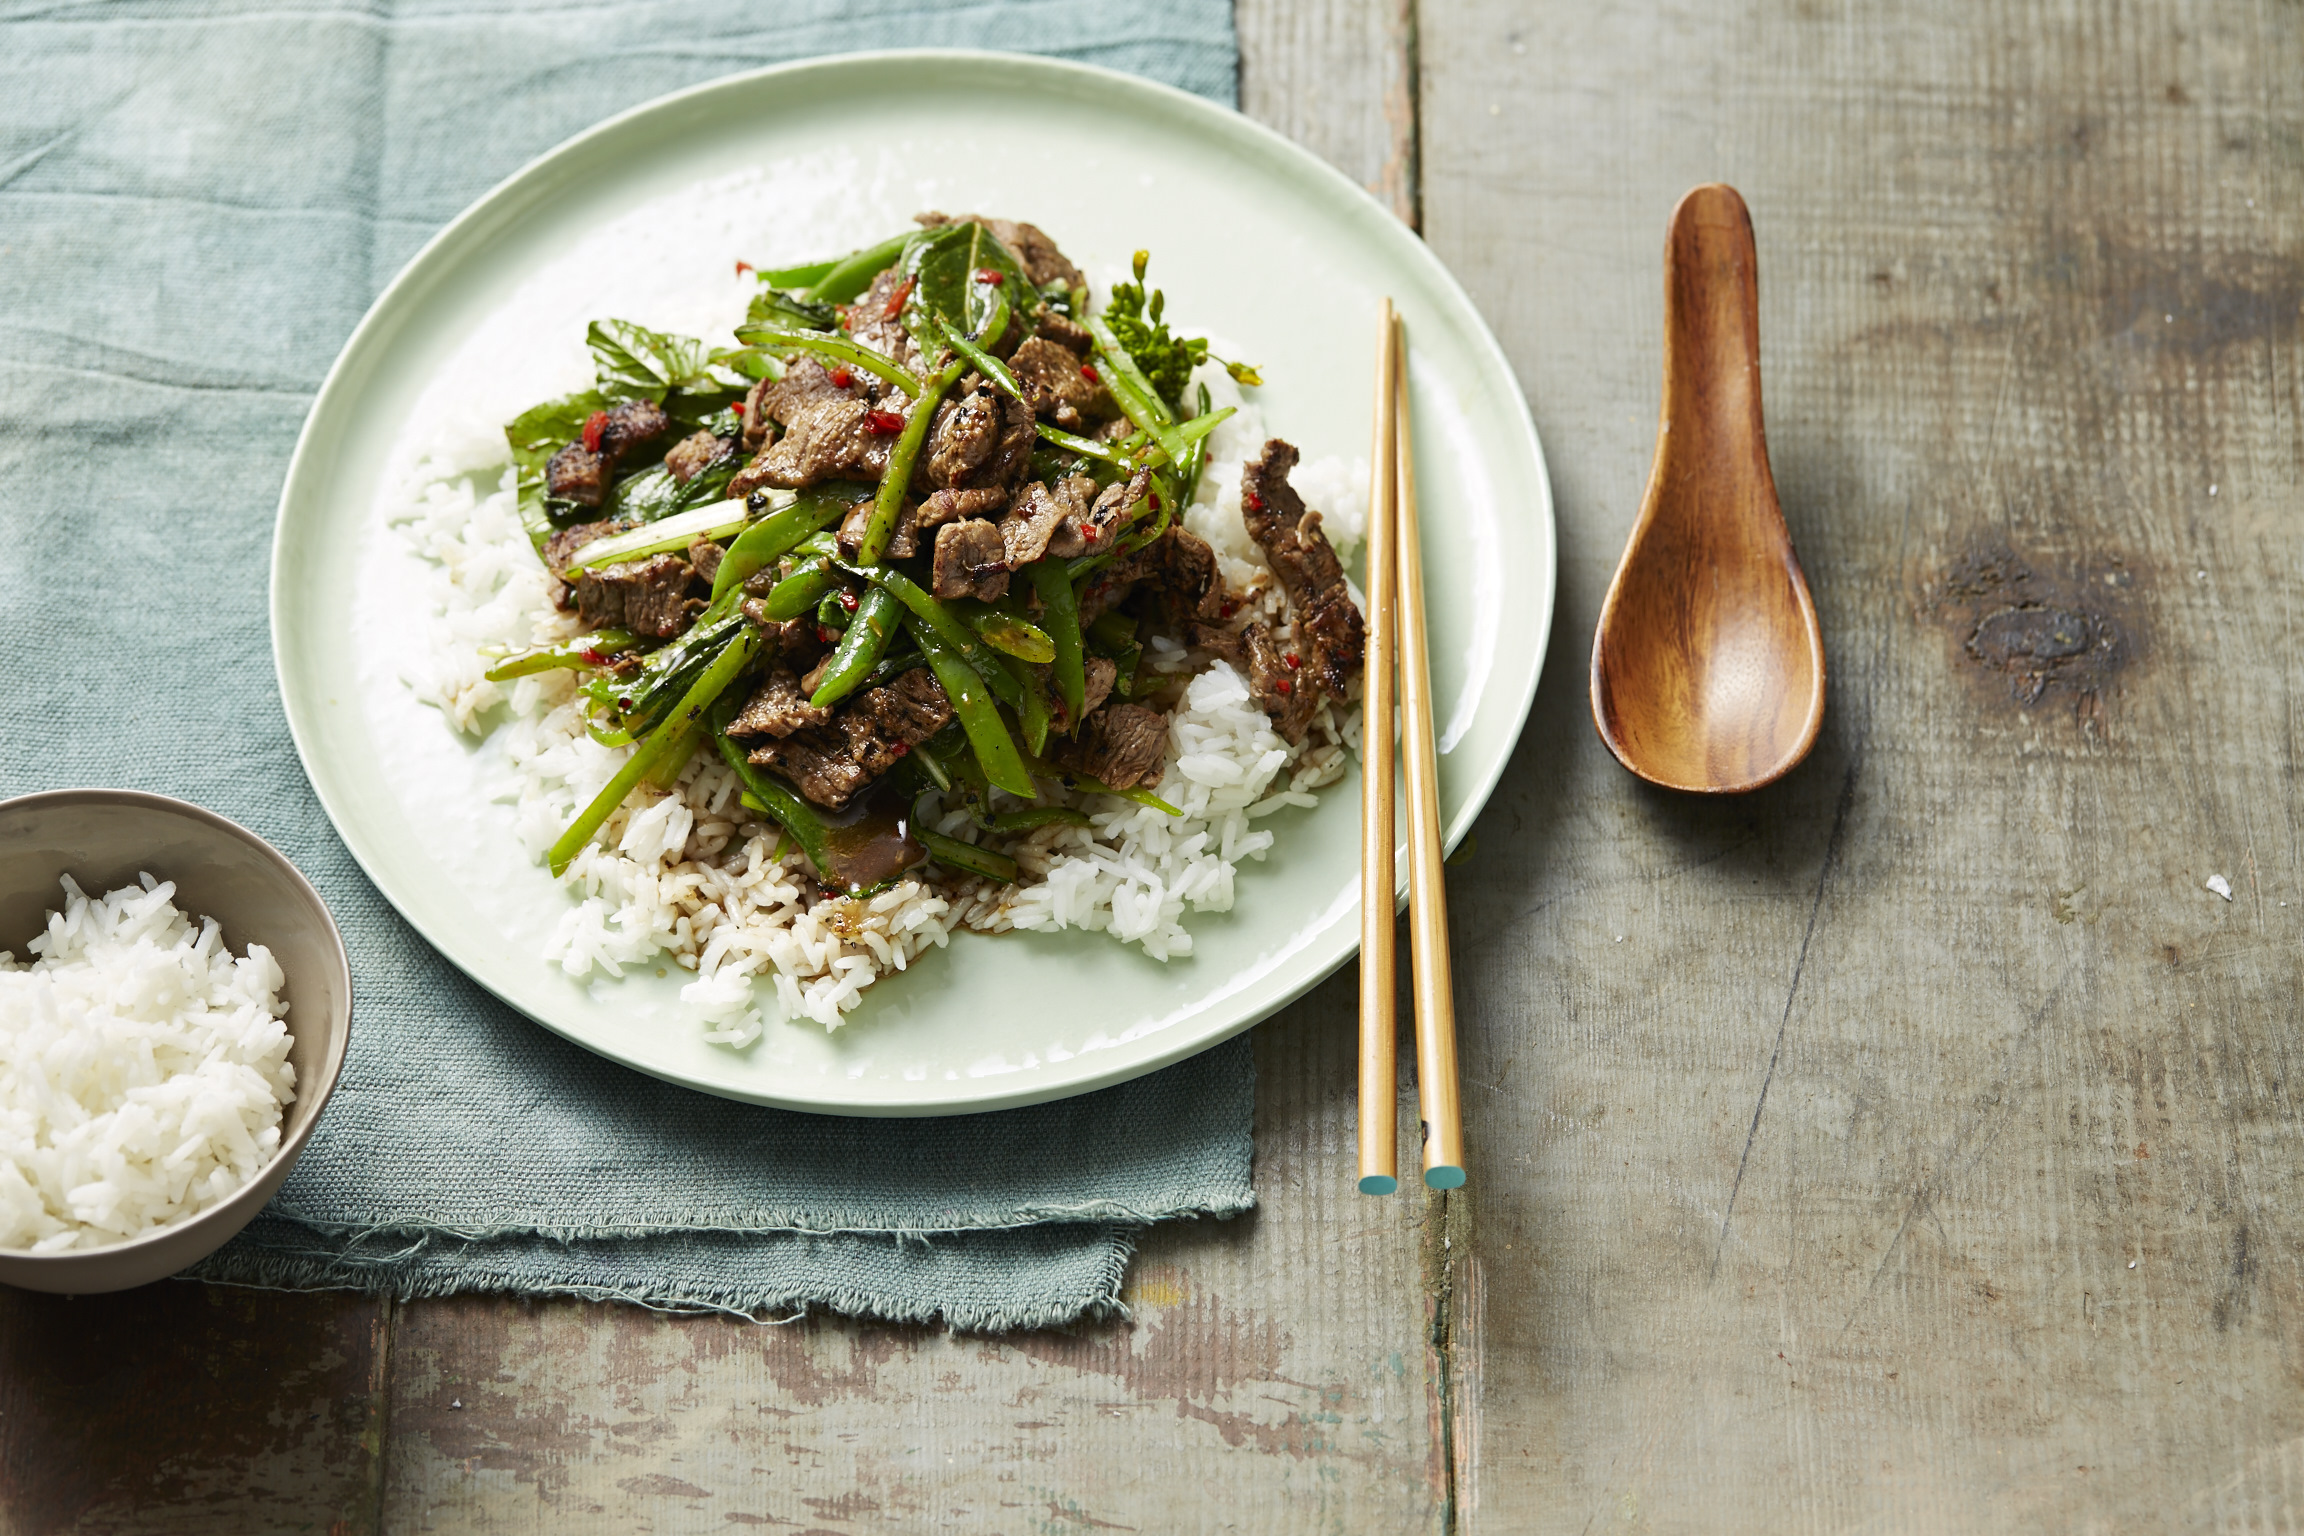 Lemongrass, Ginger & Beef Stir-Fry